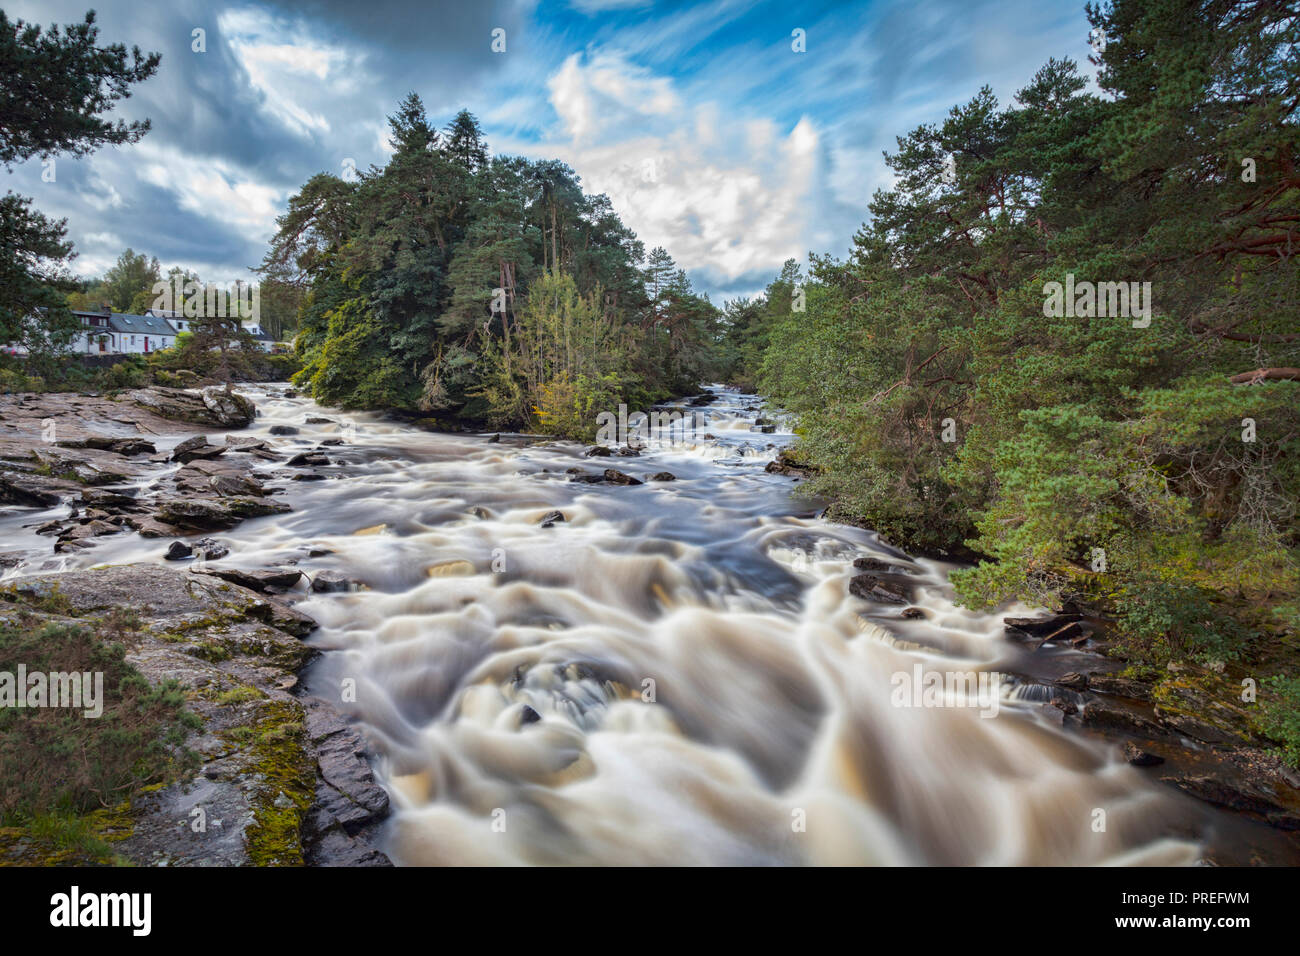 The Falls of Dochart in the village of Killin, Stirling, in central Scotland. Stock Photo